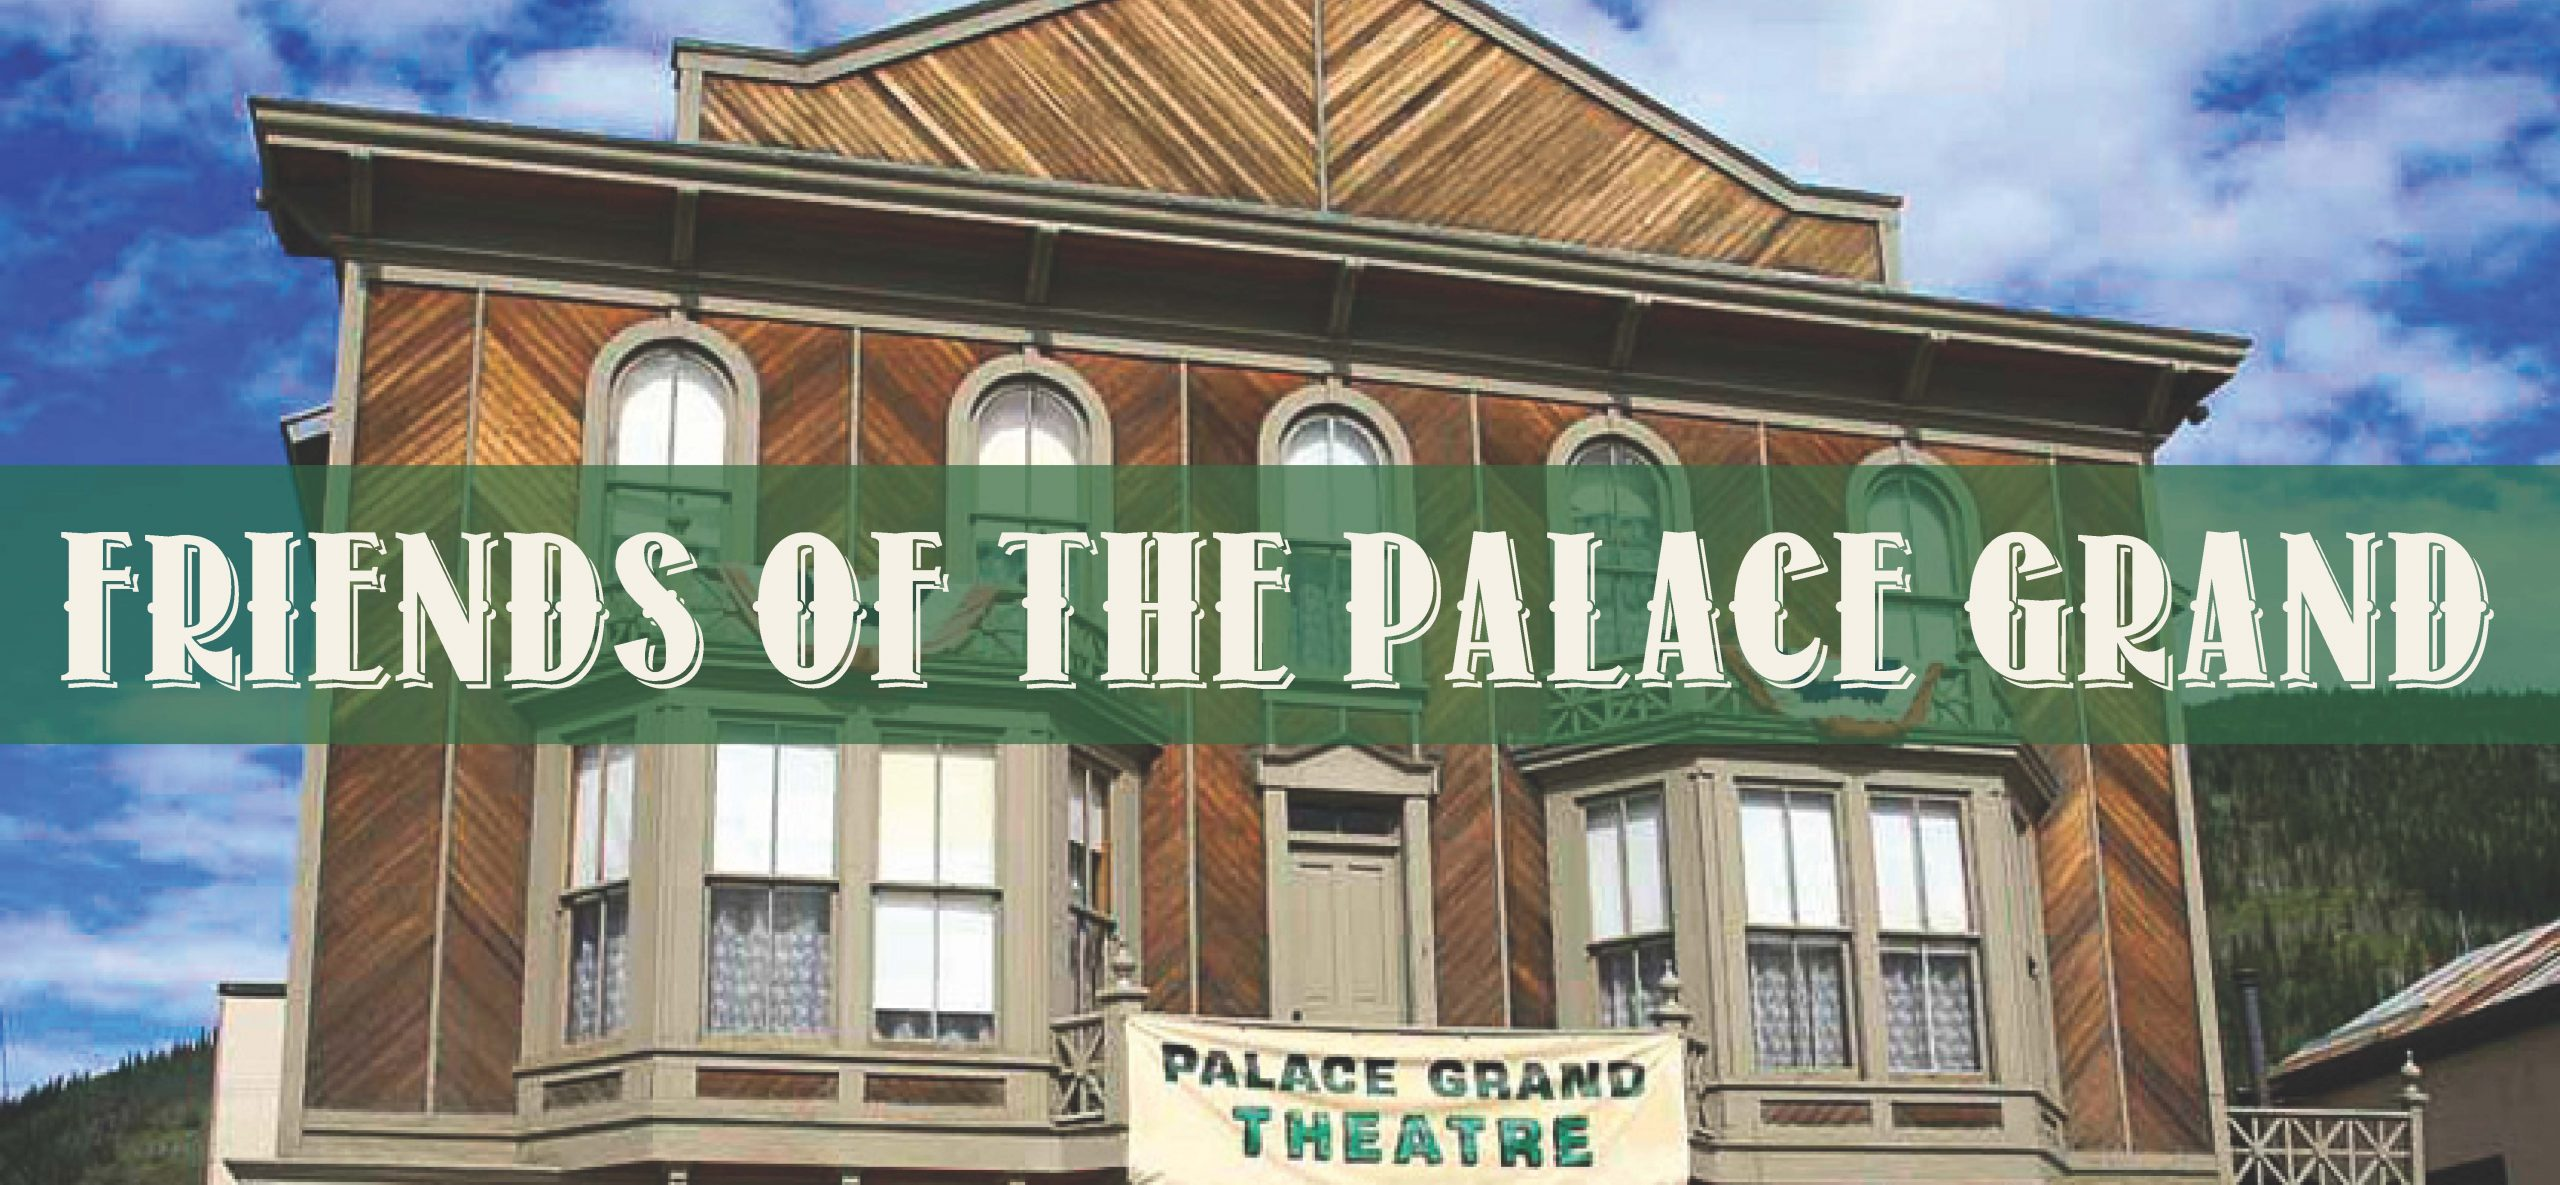 Friends of the Palace Grand